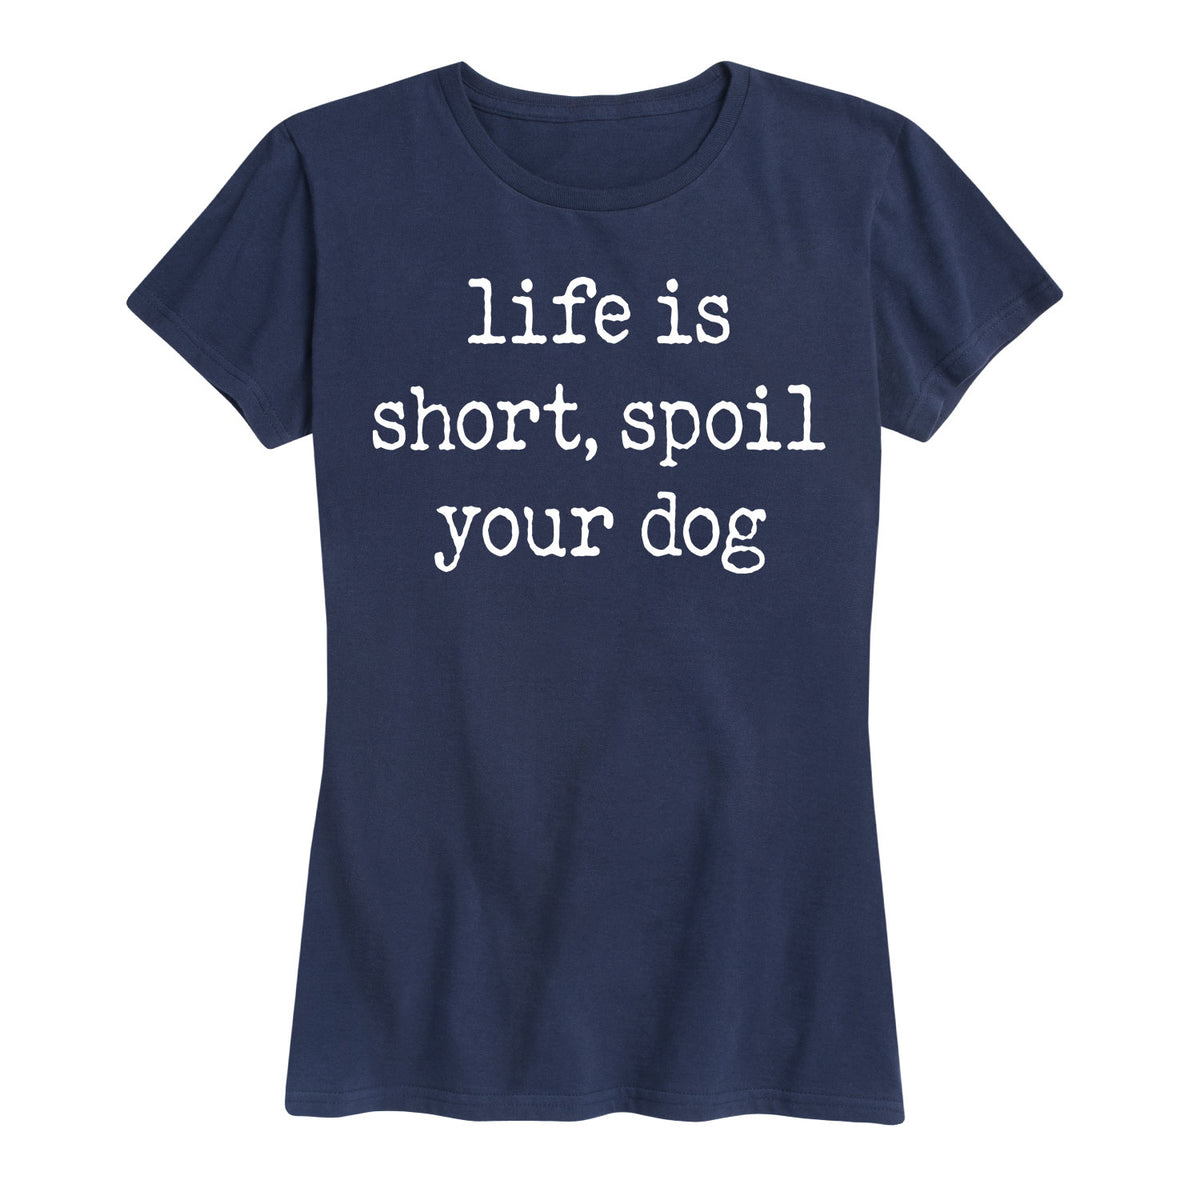 Life Is Short Spoil Your Dog - Women's Short Sleeve T-Shirt